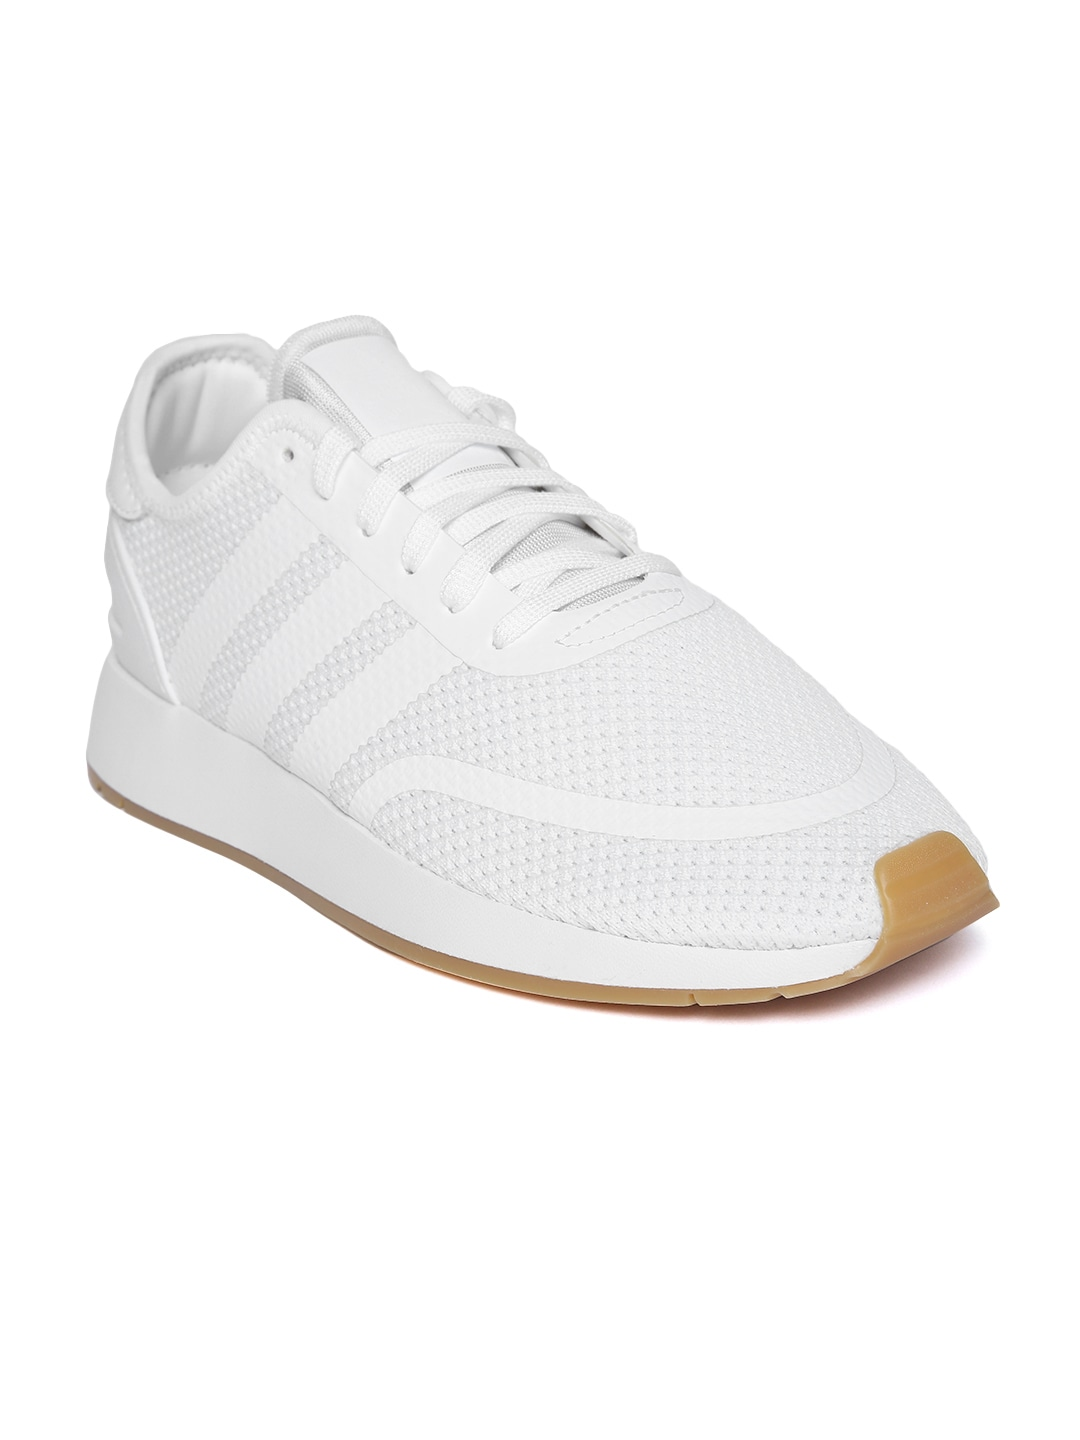 75b3e0a3ab50 White Shoes - Buy White Shoes Online in India